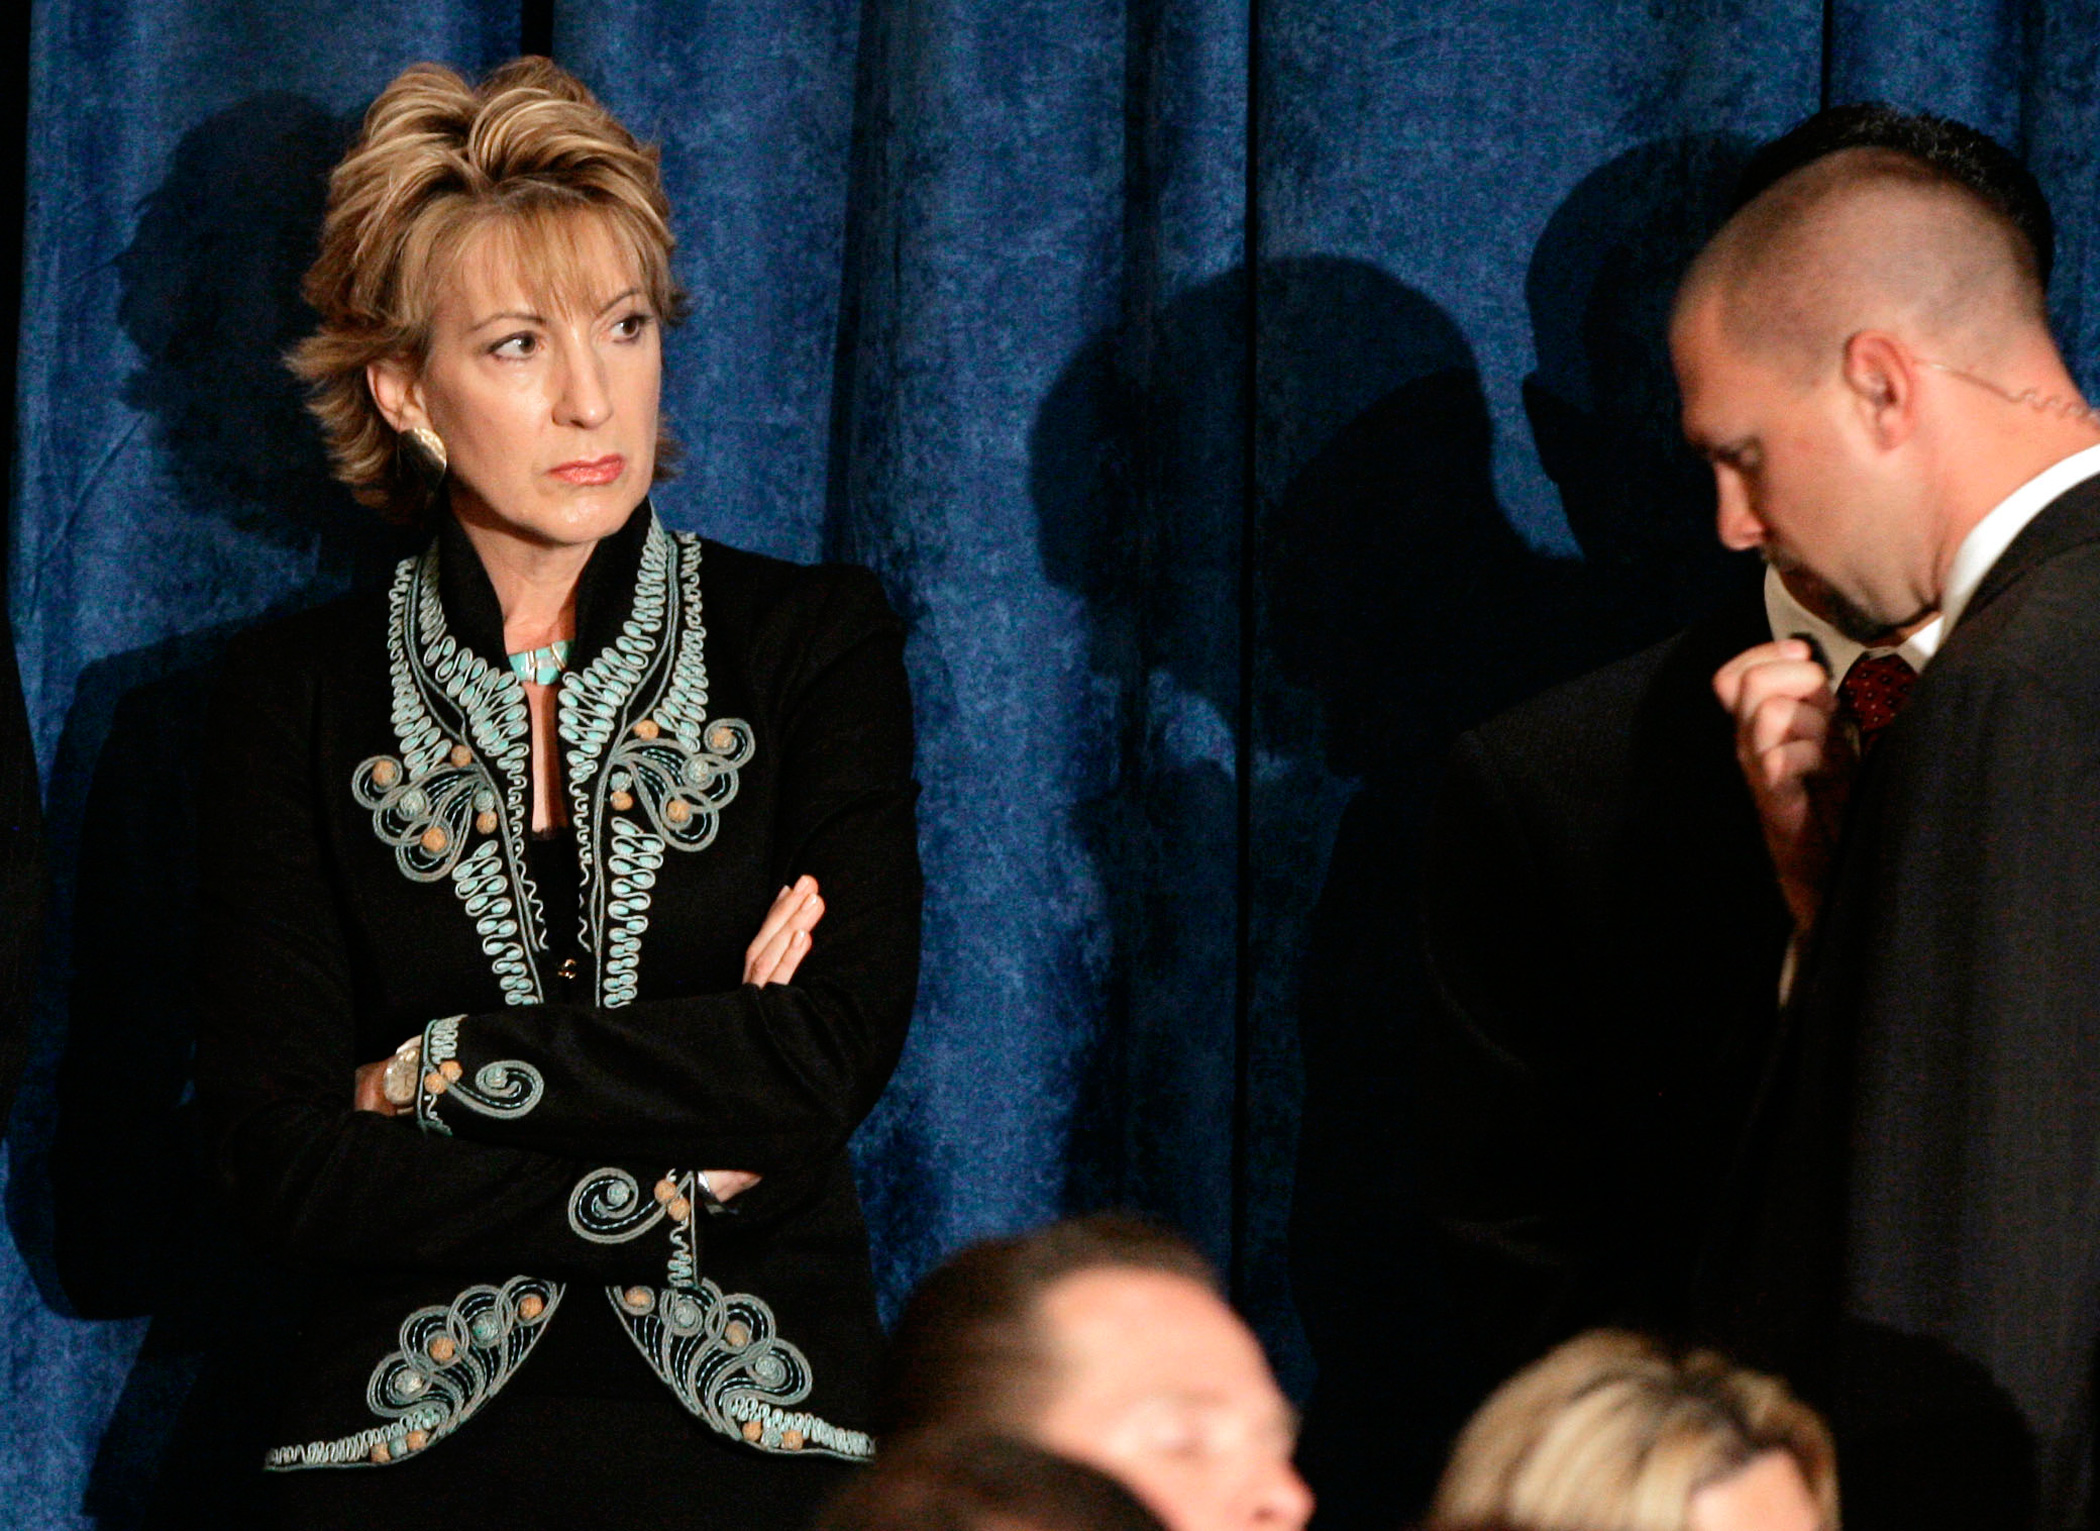 Carly Fiorina, listens as  Sen. John McCain speaks during a town hall-style meeting on May 20, 2008 in Miami.